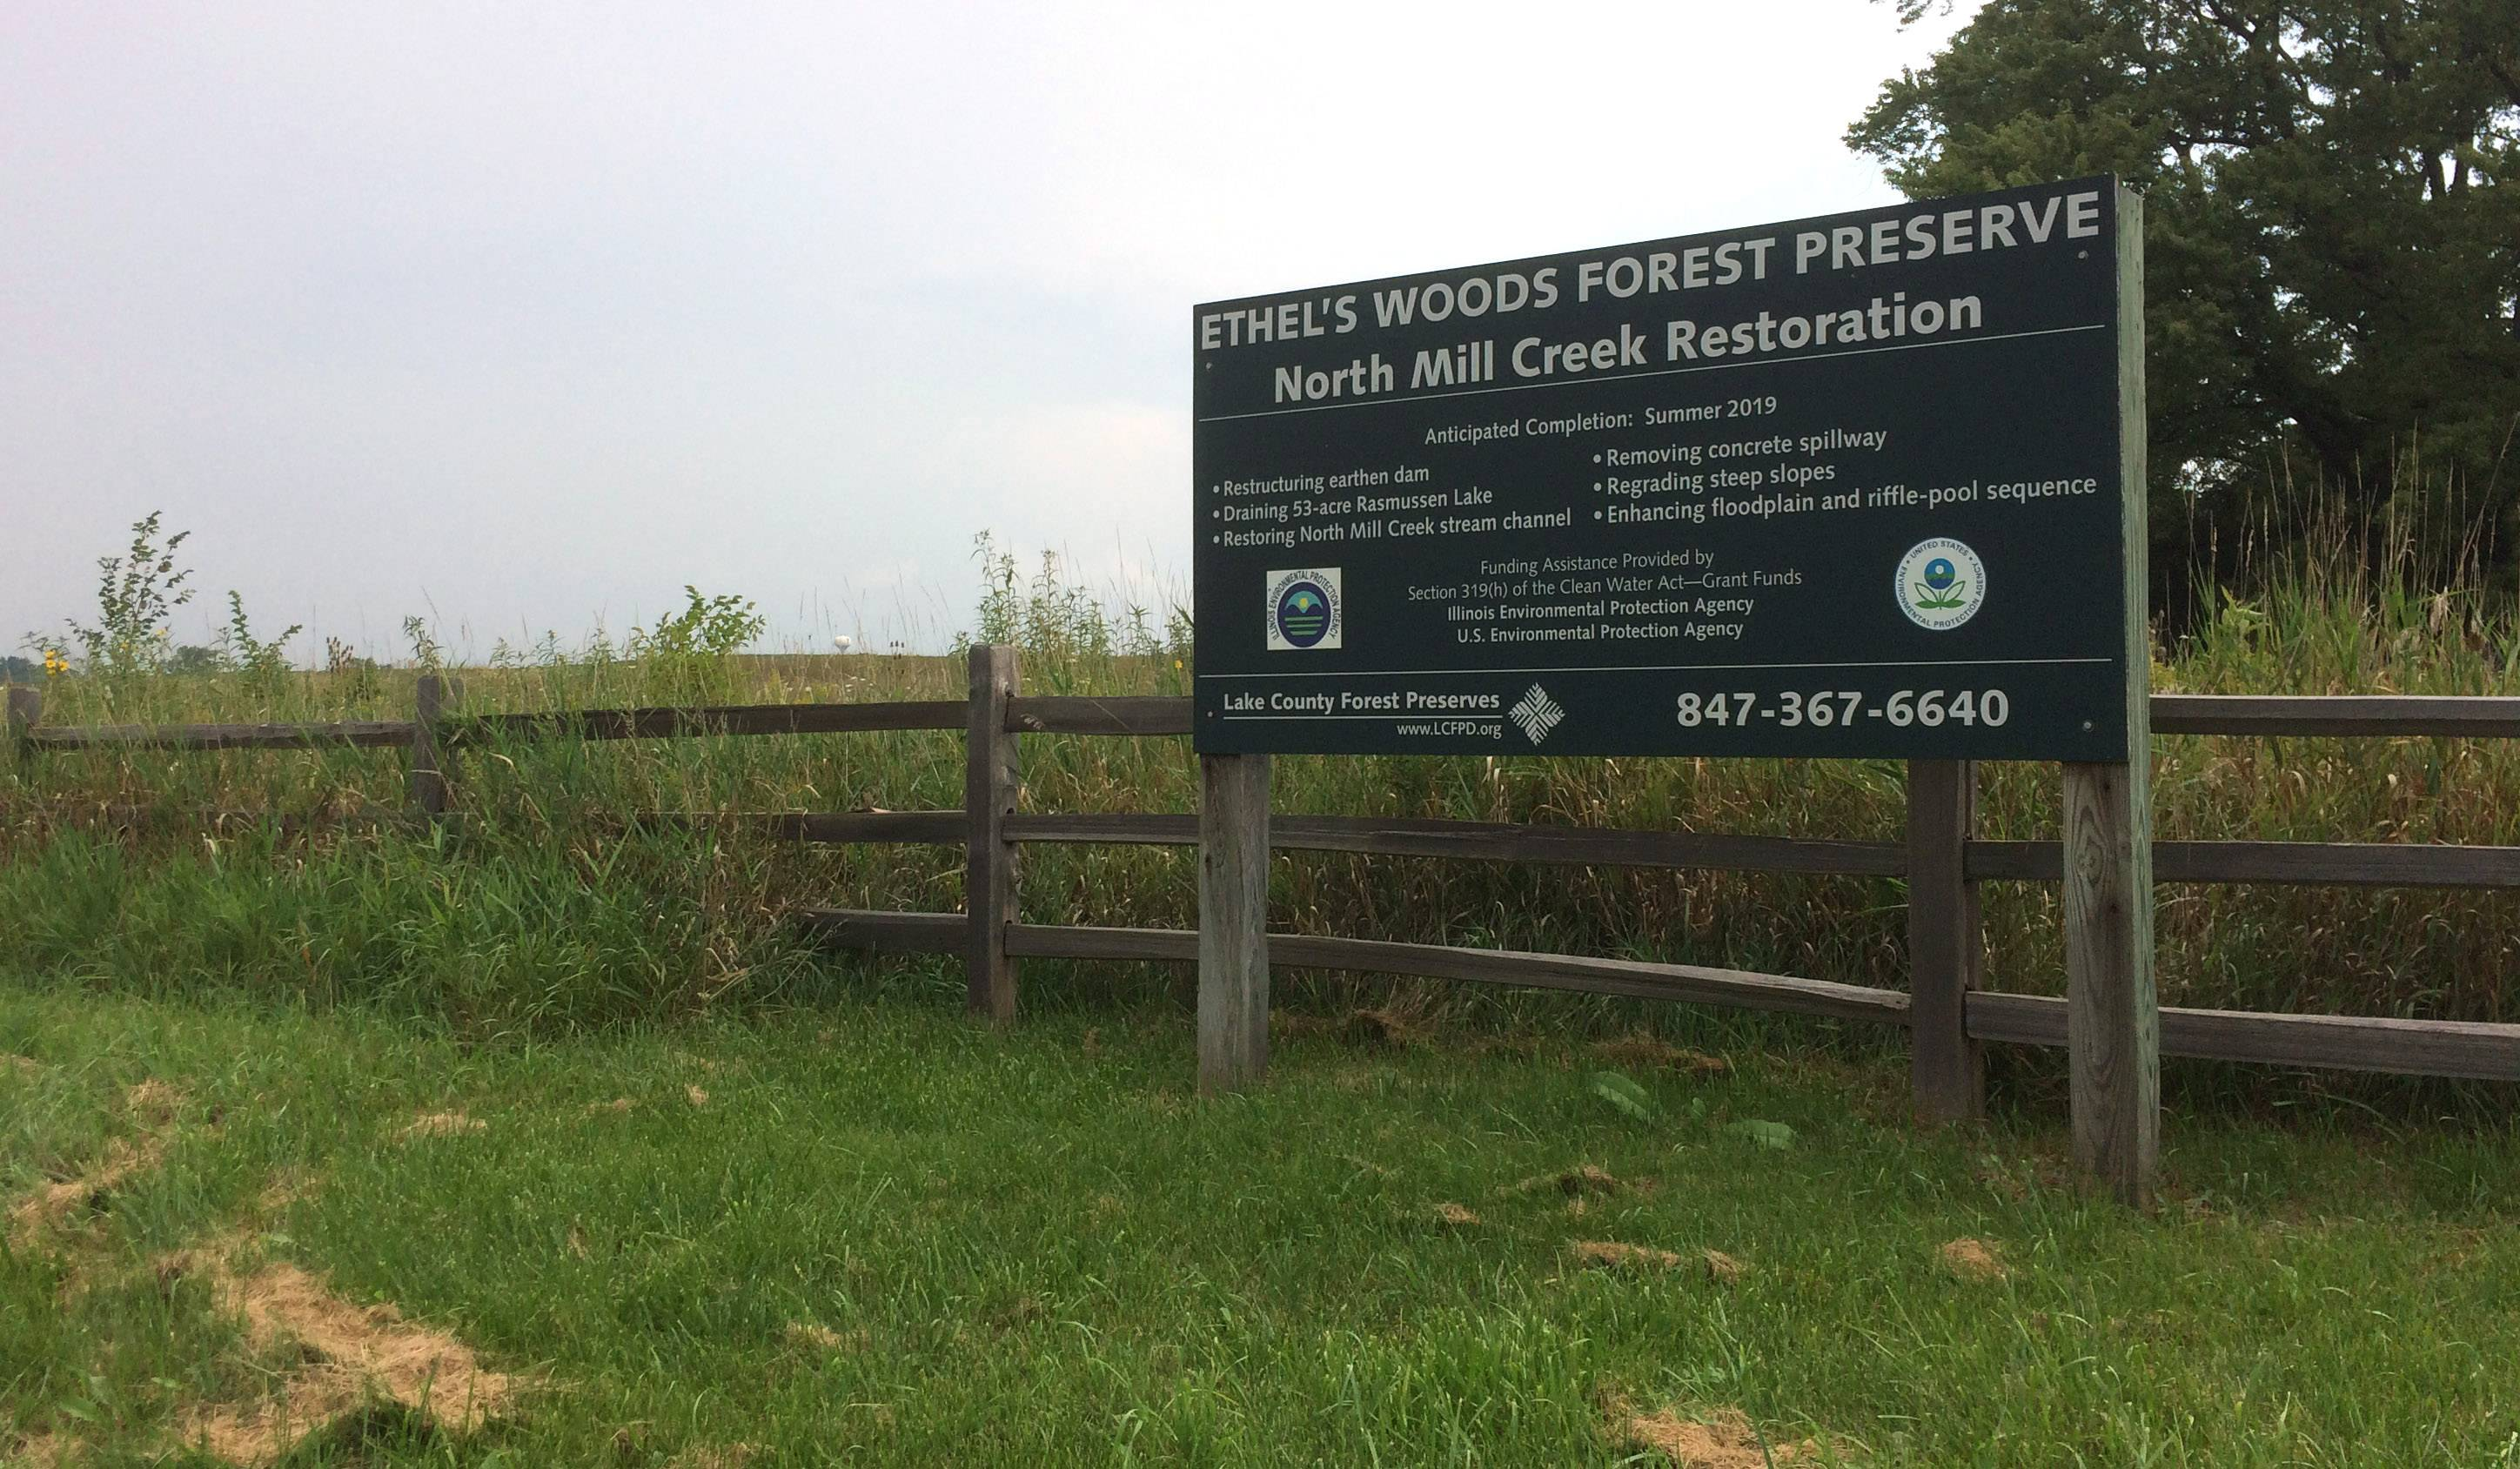 The property that became Ethel's Woods was purchased by the Lake County Forest Preserve District in 2001 but has not been opened for public access. Officials hope that will change by 2019.